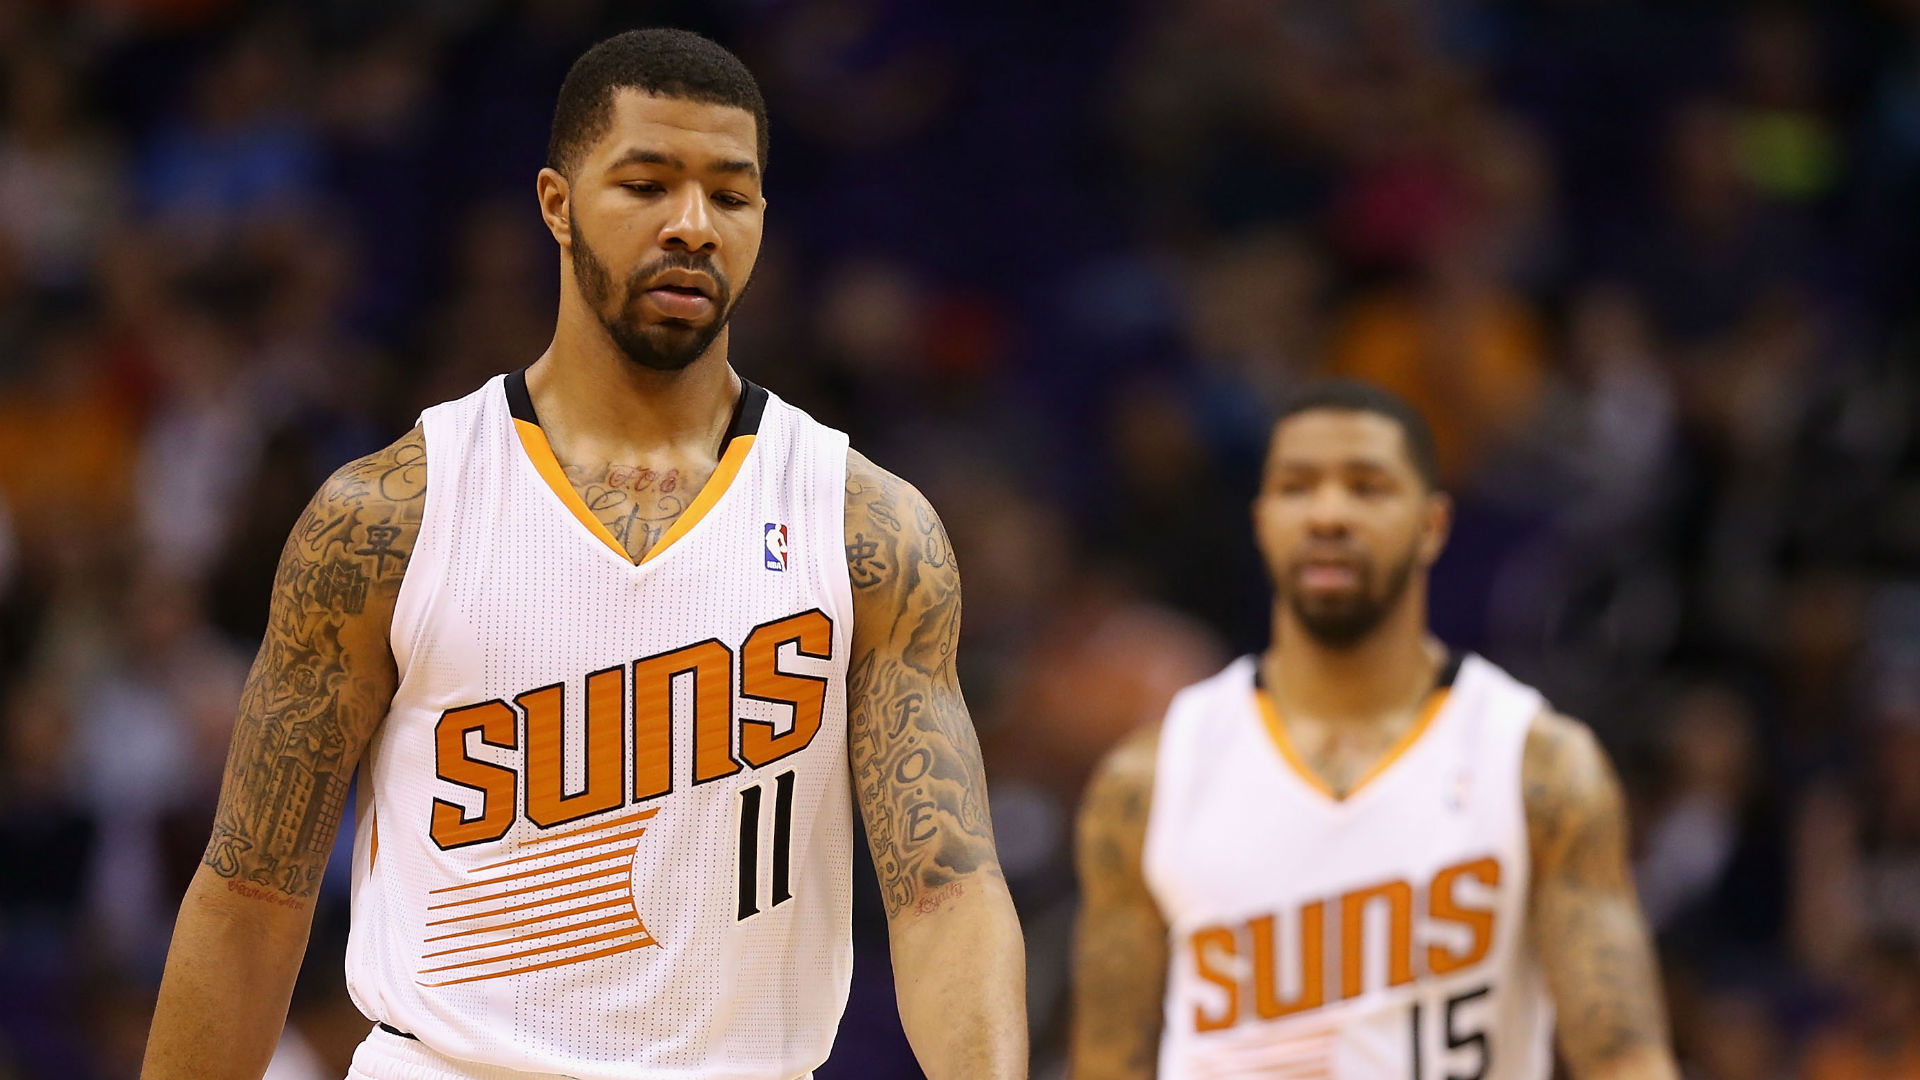 Suns treating NBA players like stocks, for better or worse